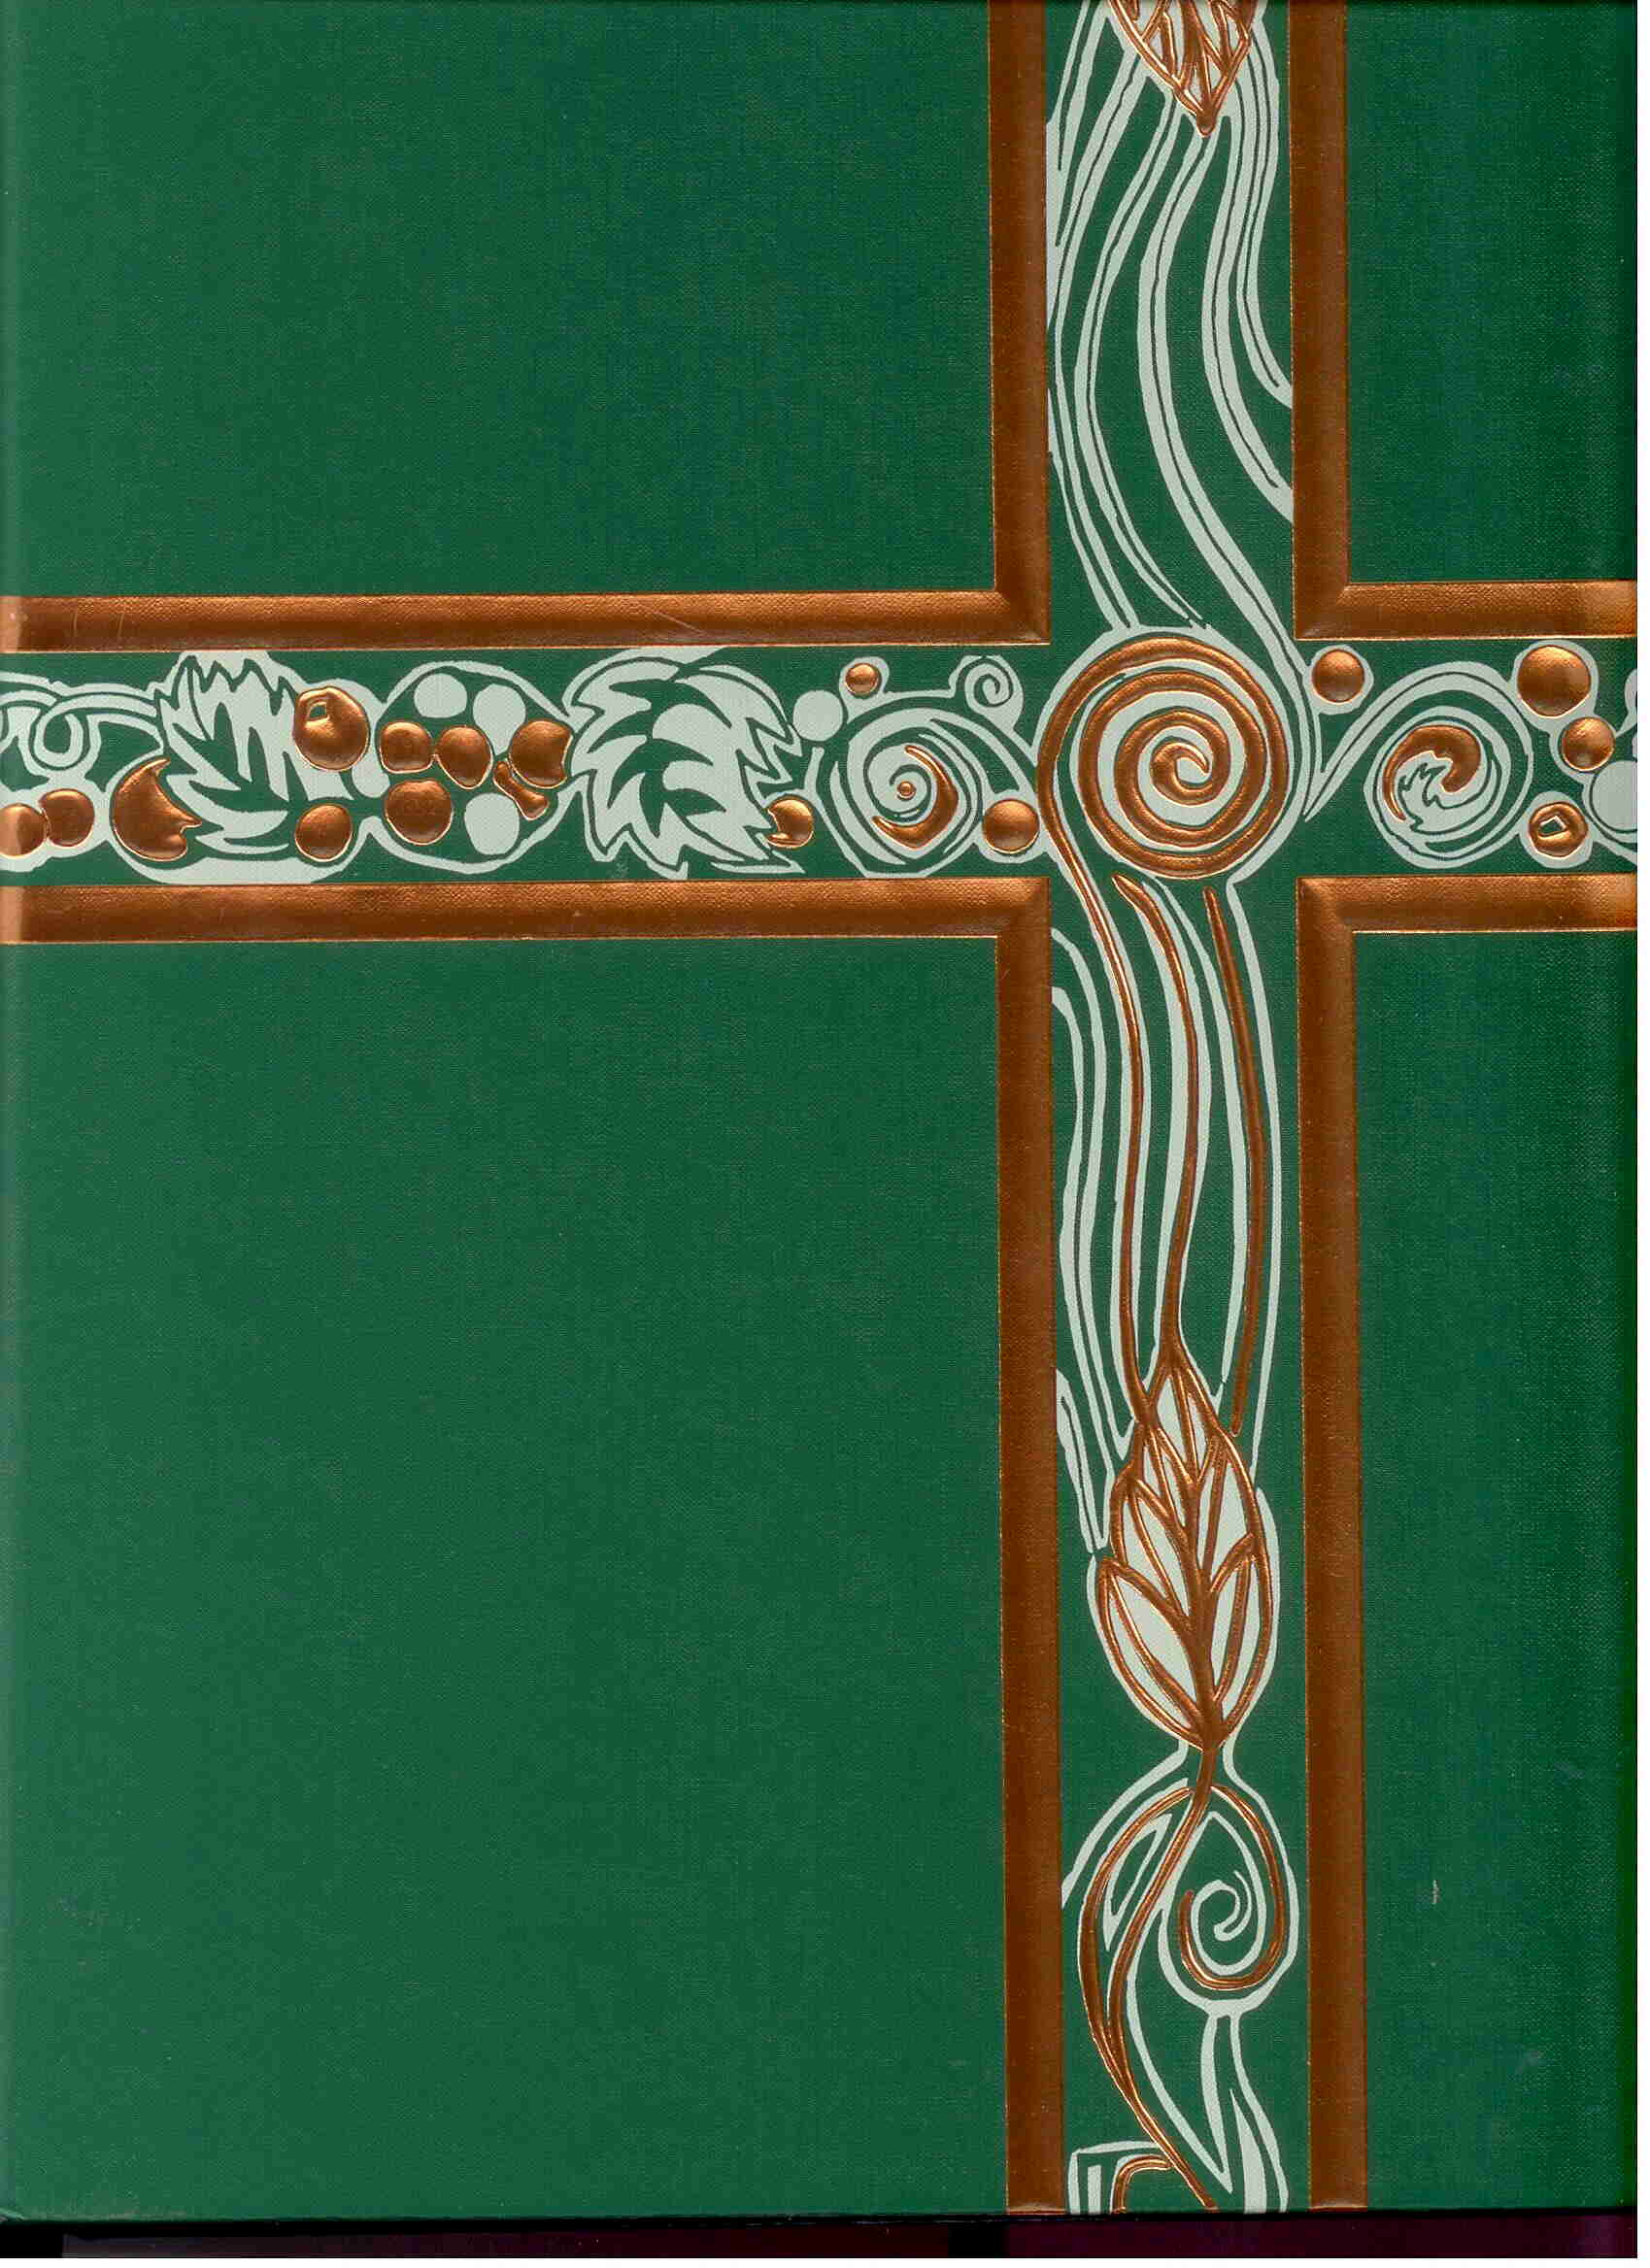 Ceremonial Binder Green with Copper Foil #006586